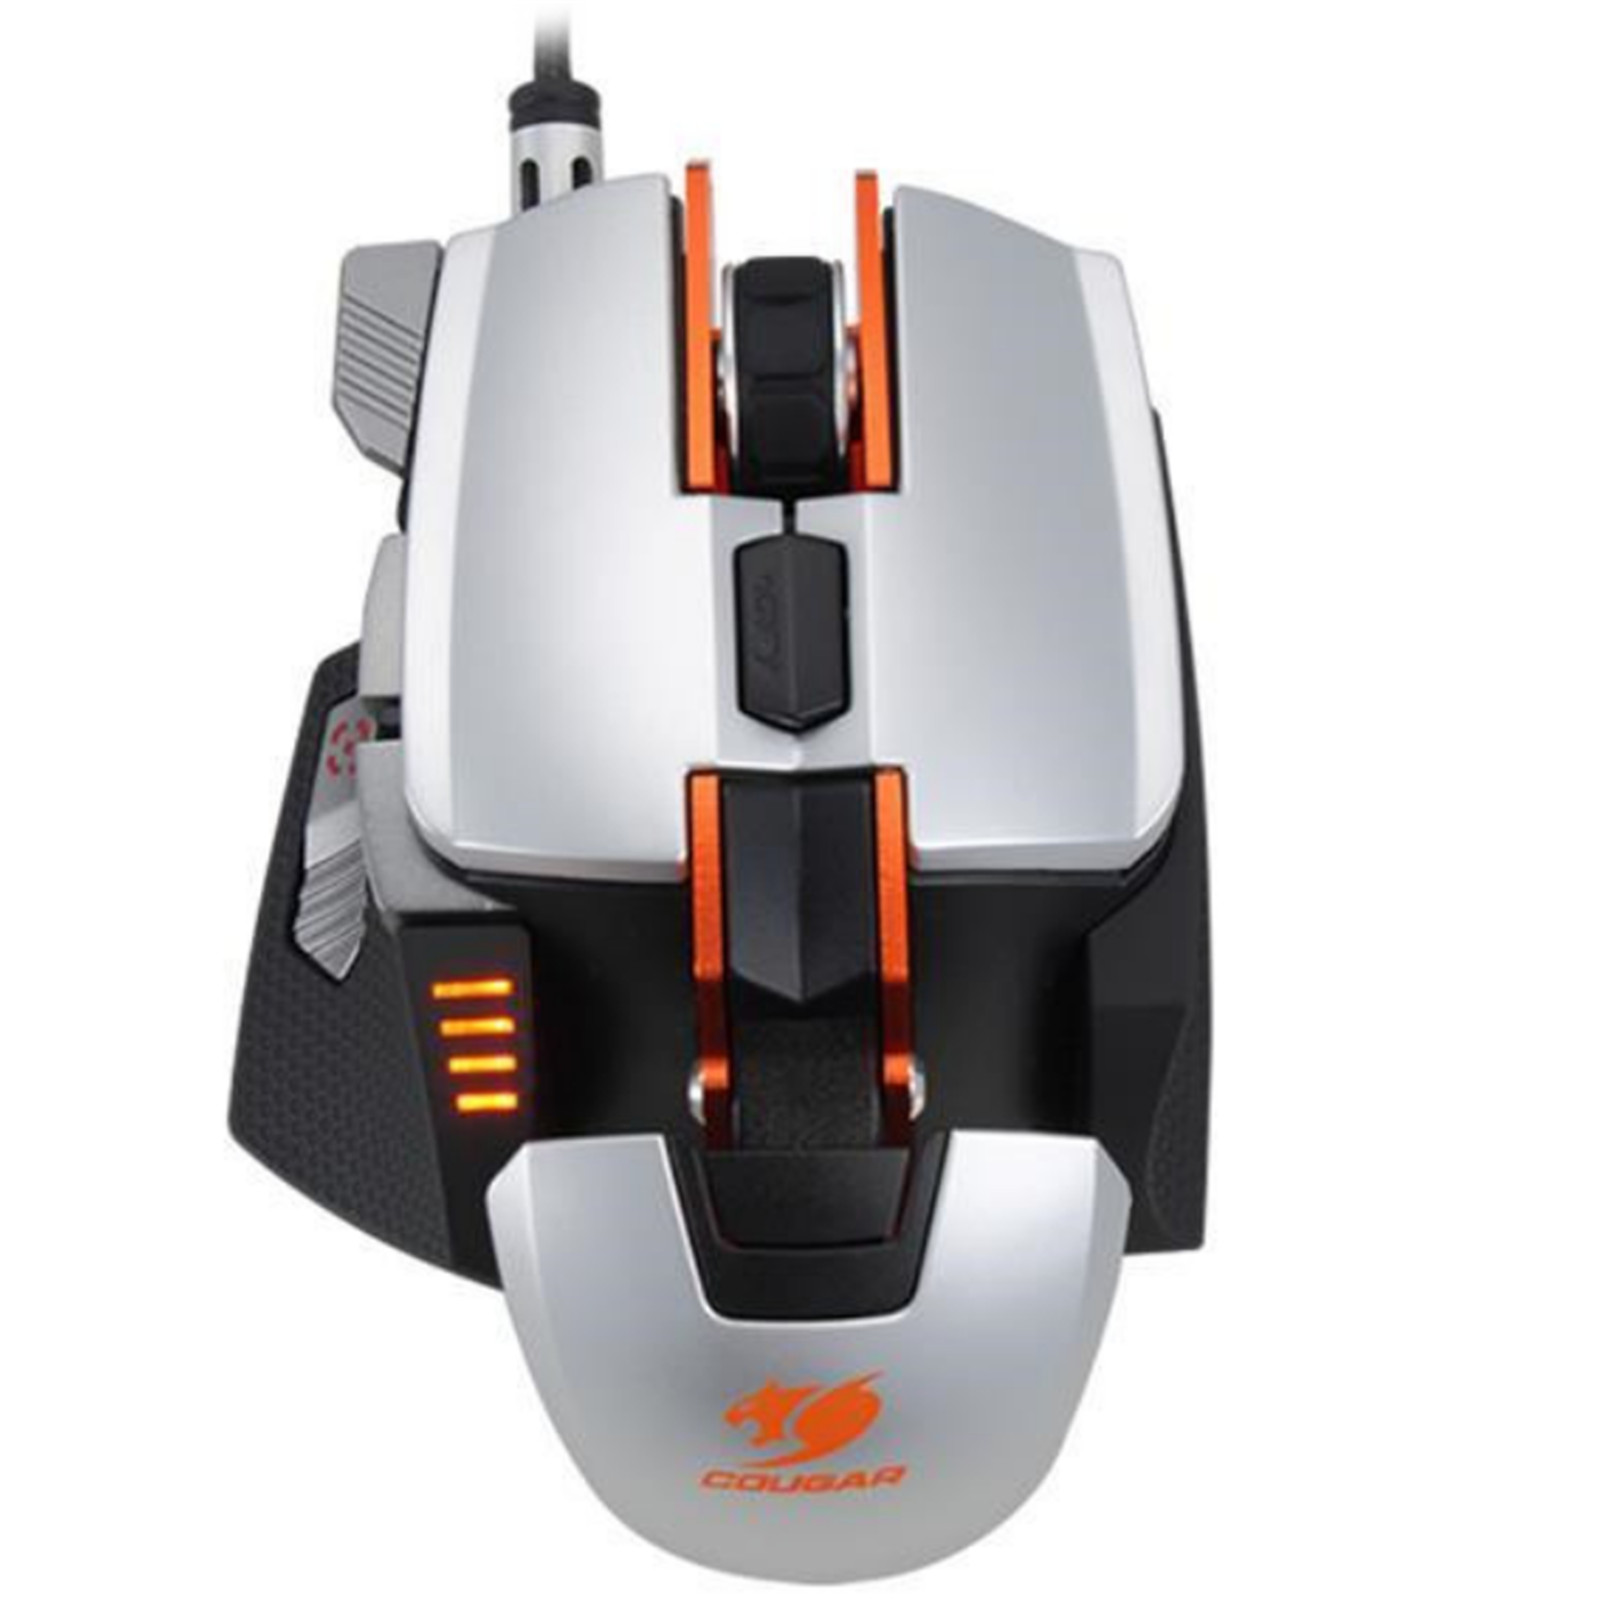 61630b46dce Buy the Cougar 700M Laser Gaming Mouse 8200dpi - Silver ( CGR-WLMS ...